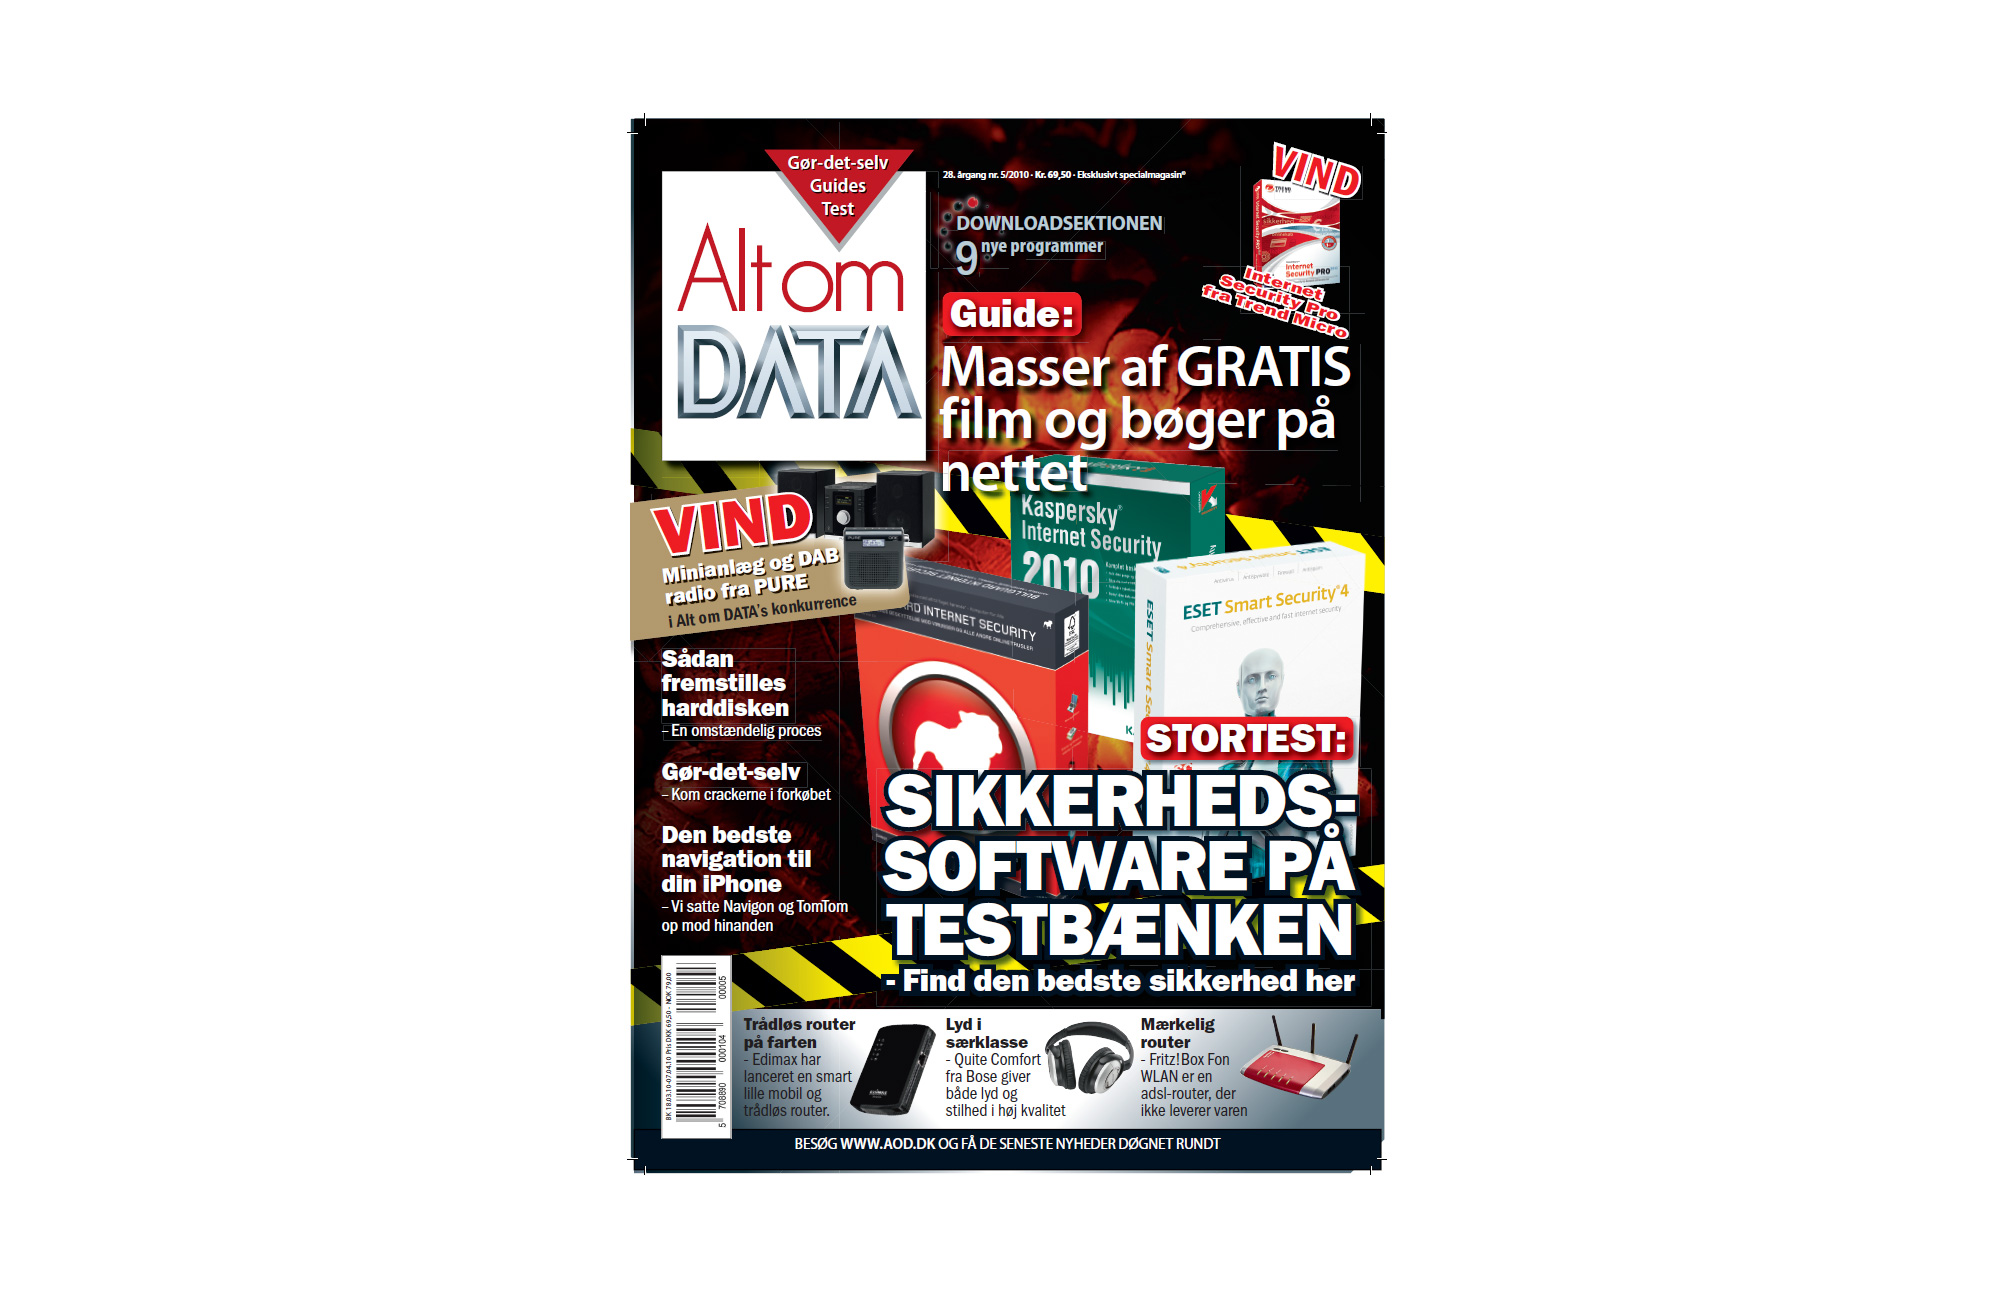 Links til Alt om DATA 05/2010